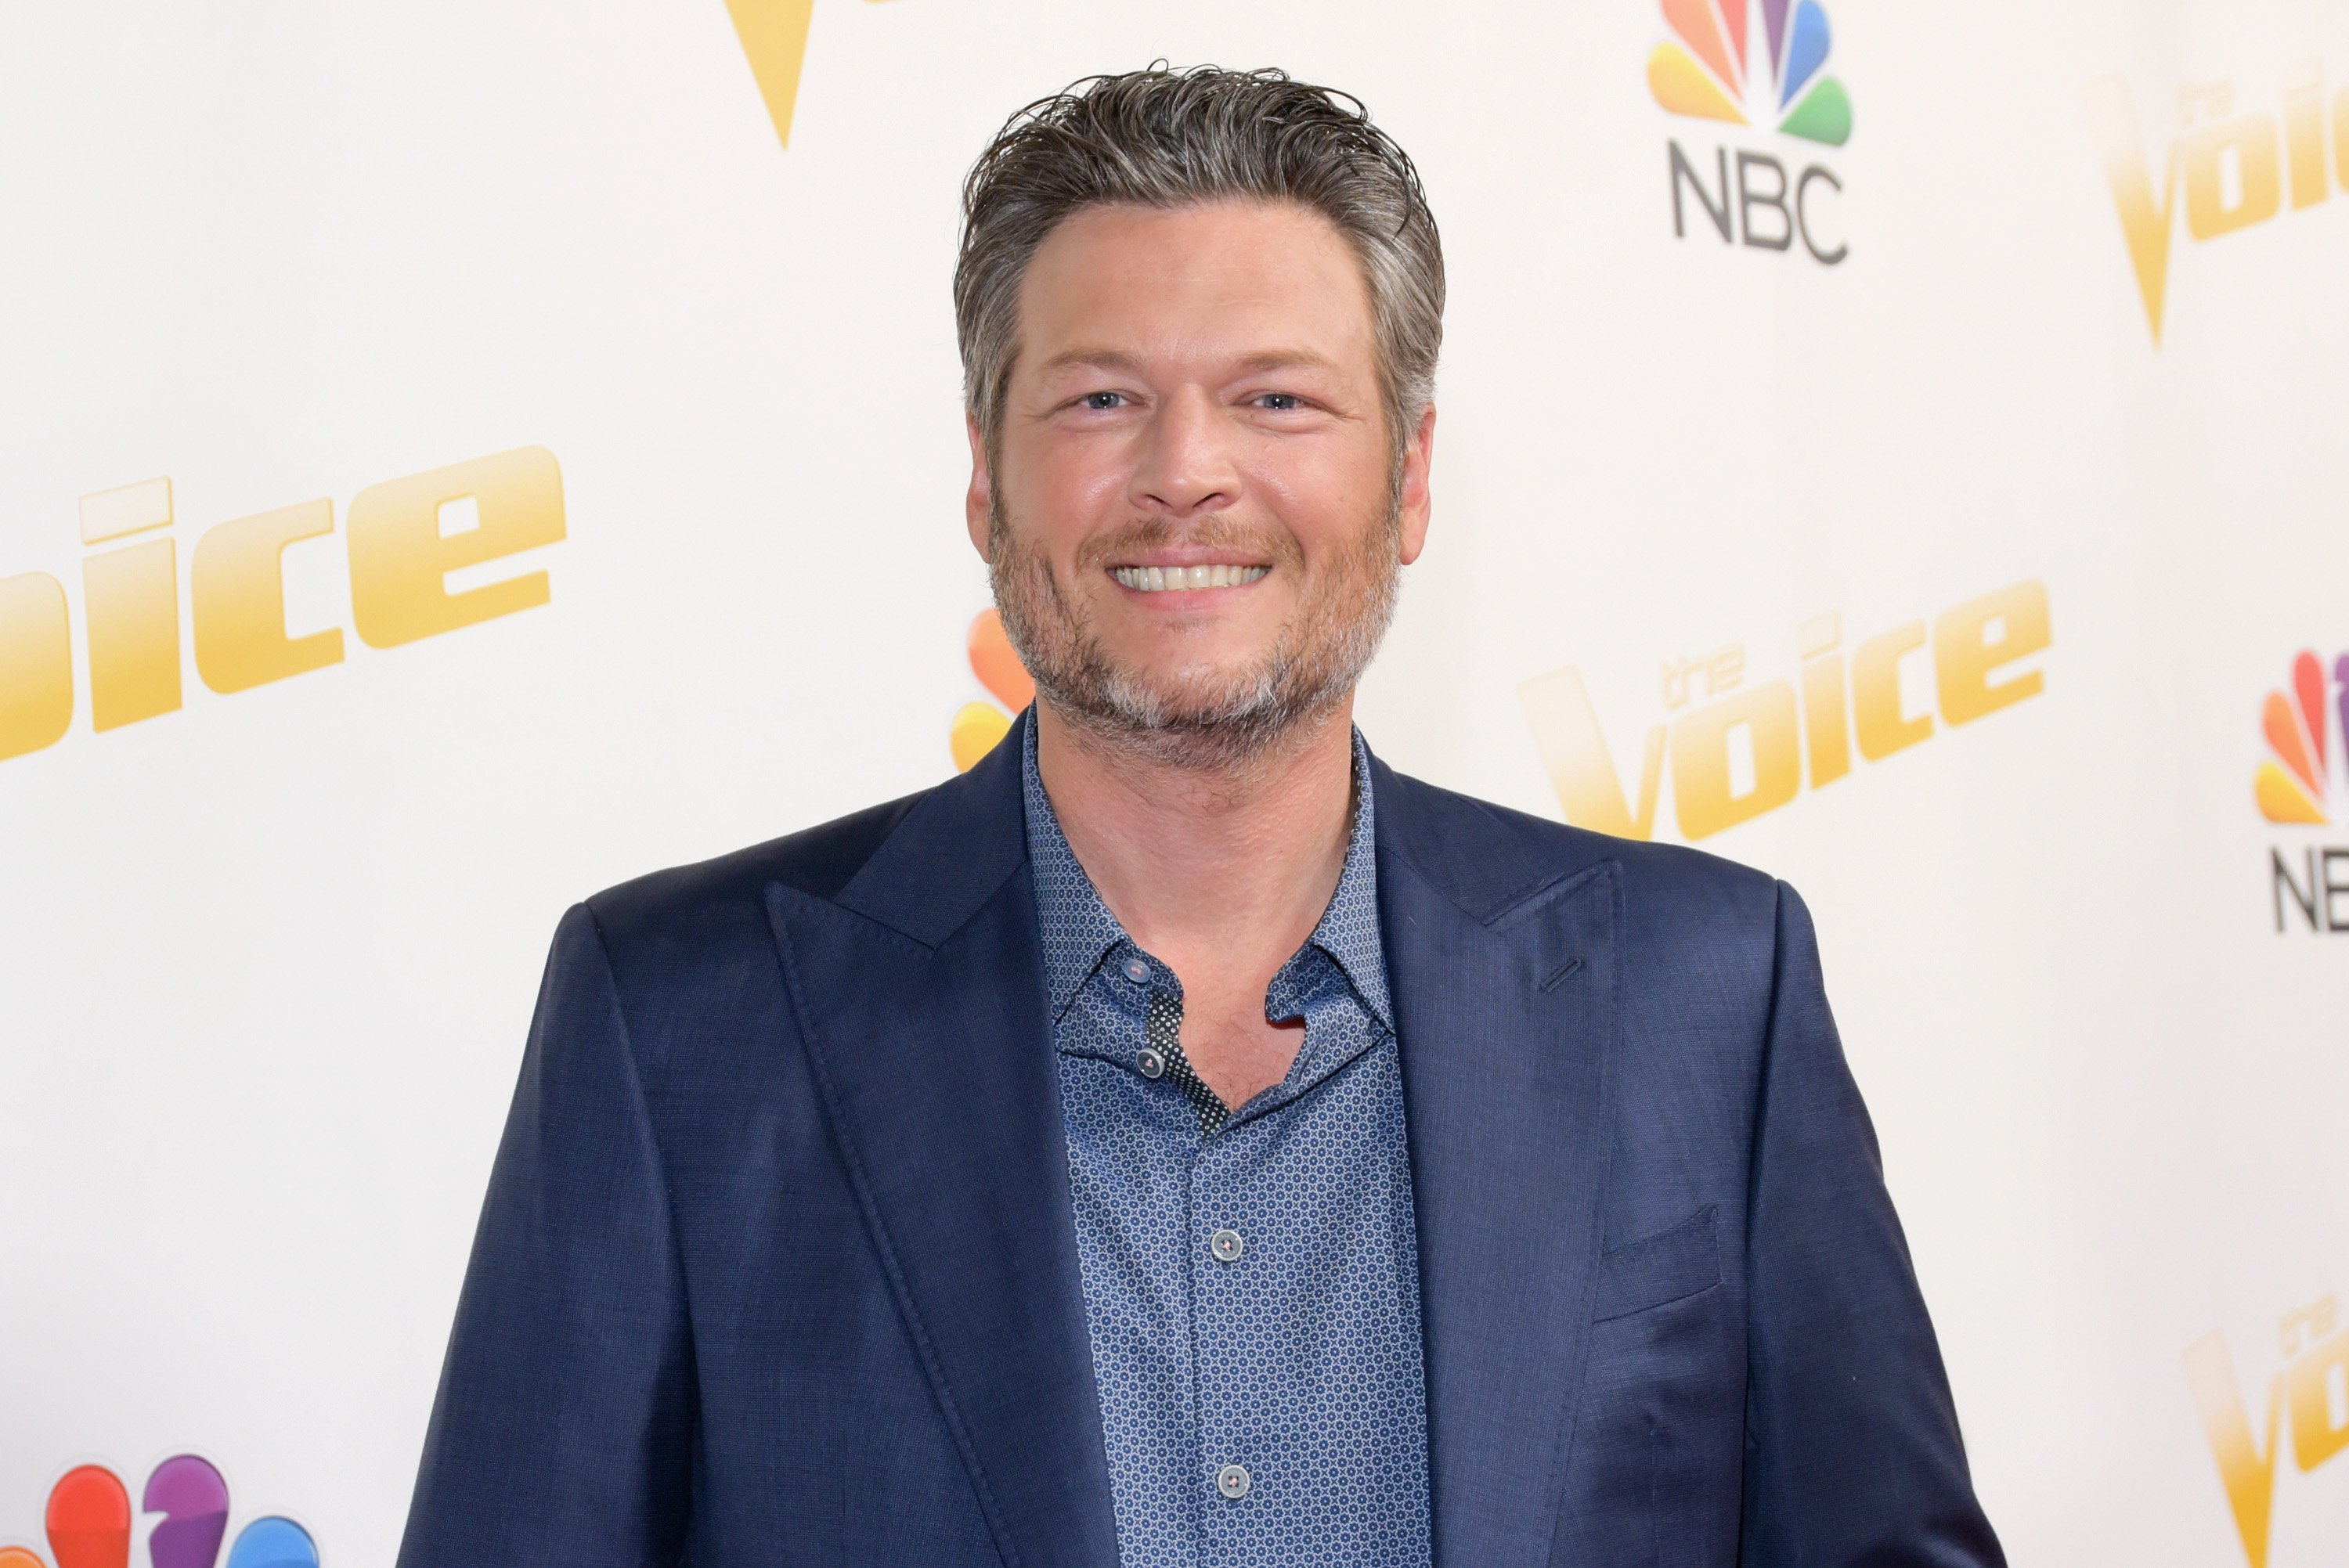 Blake Shelton attends NBC's 'The Voice' Season 14 taping on April 23, 2018, in Universal City, California. | Source: Getty Images.